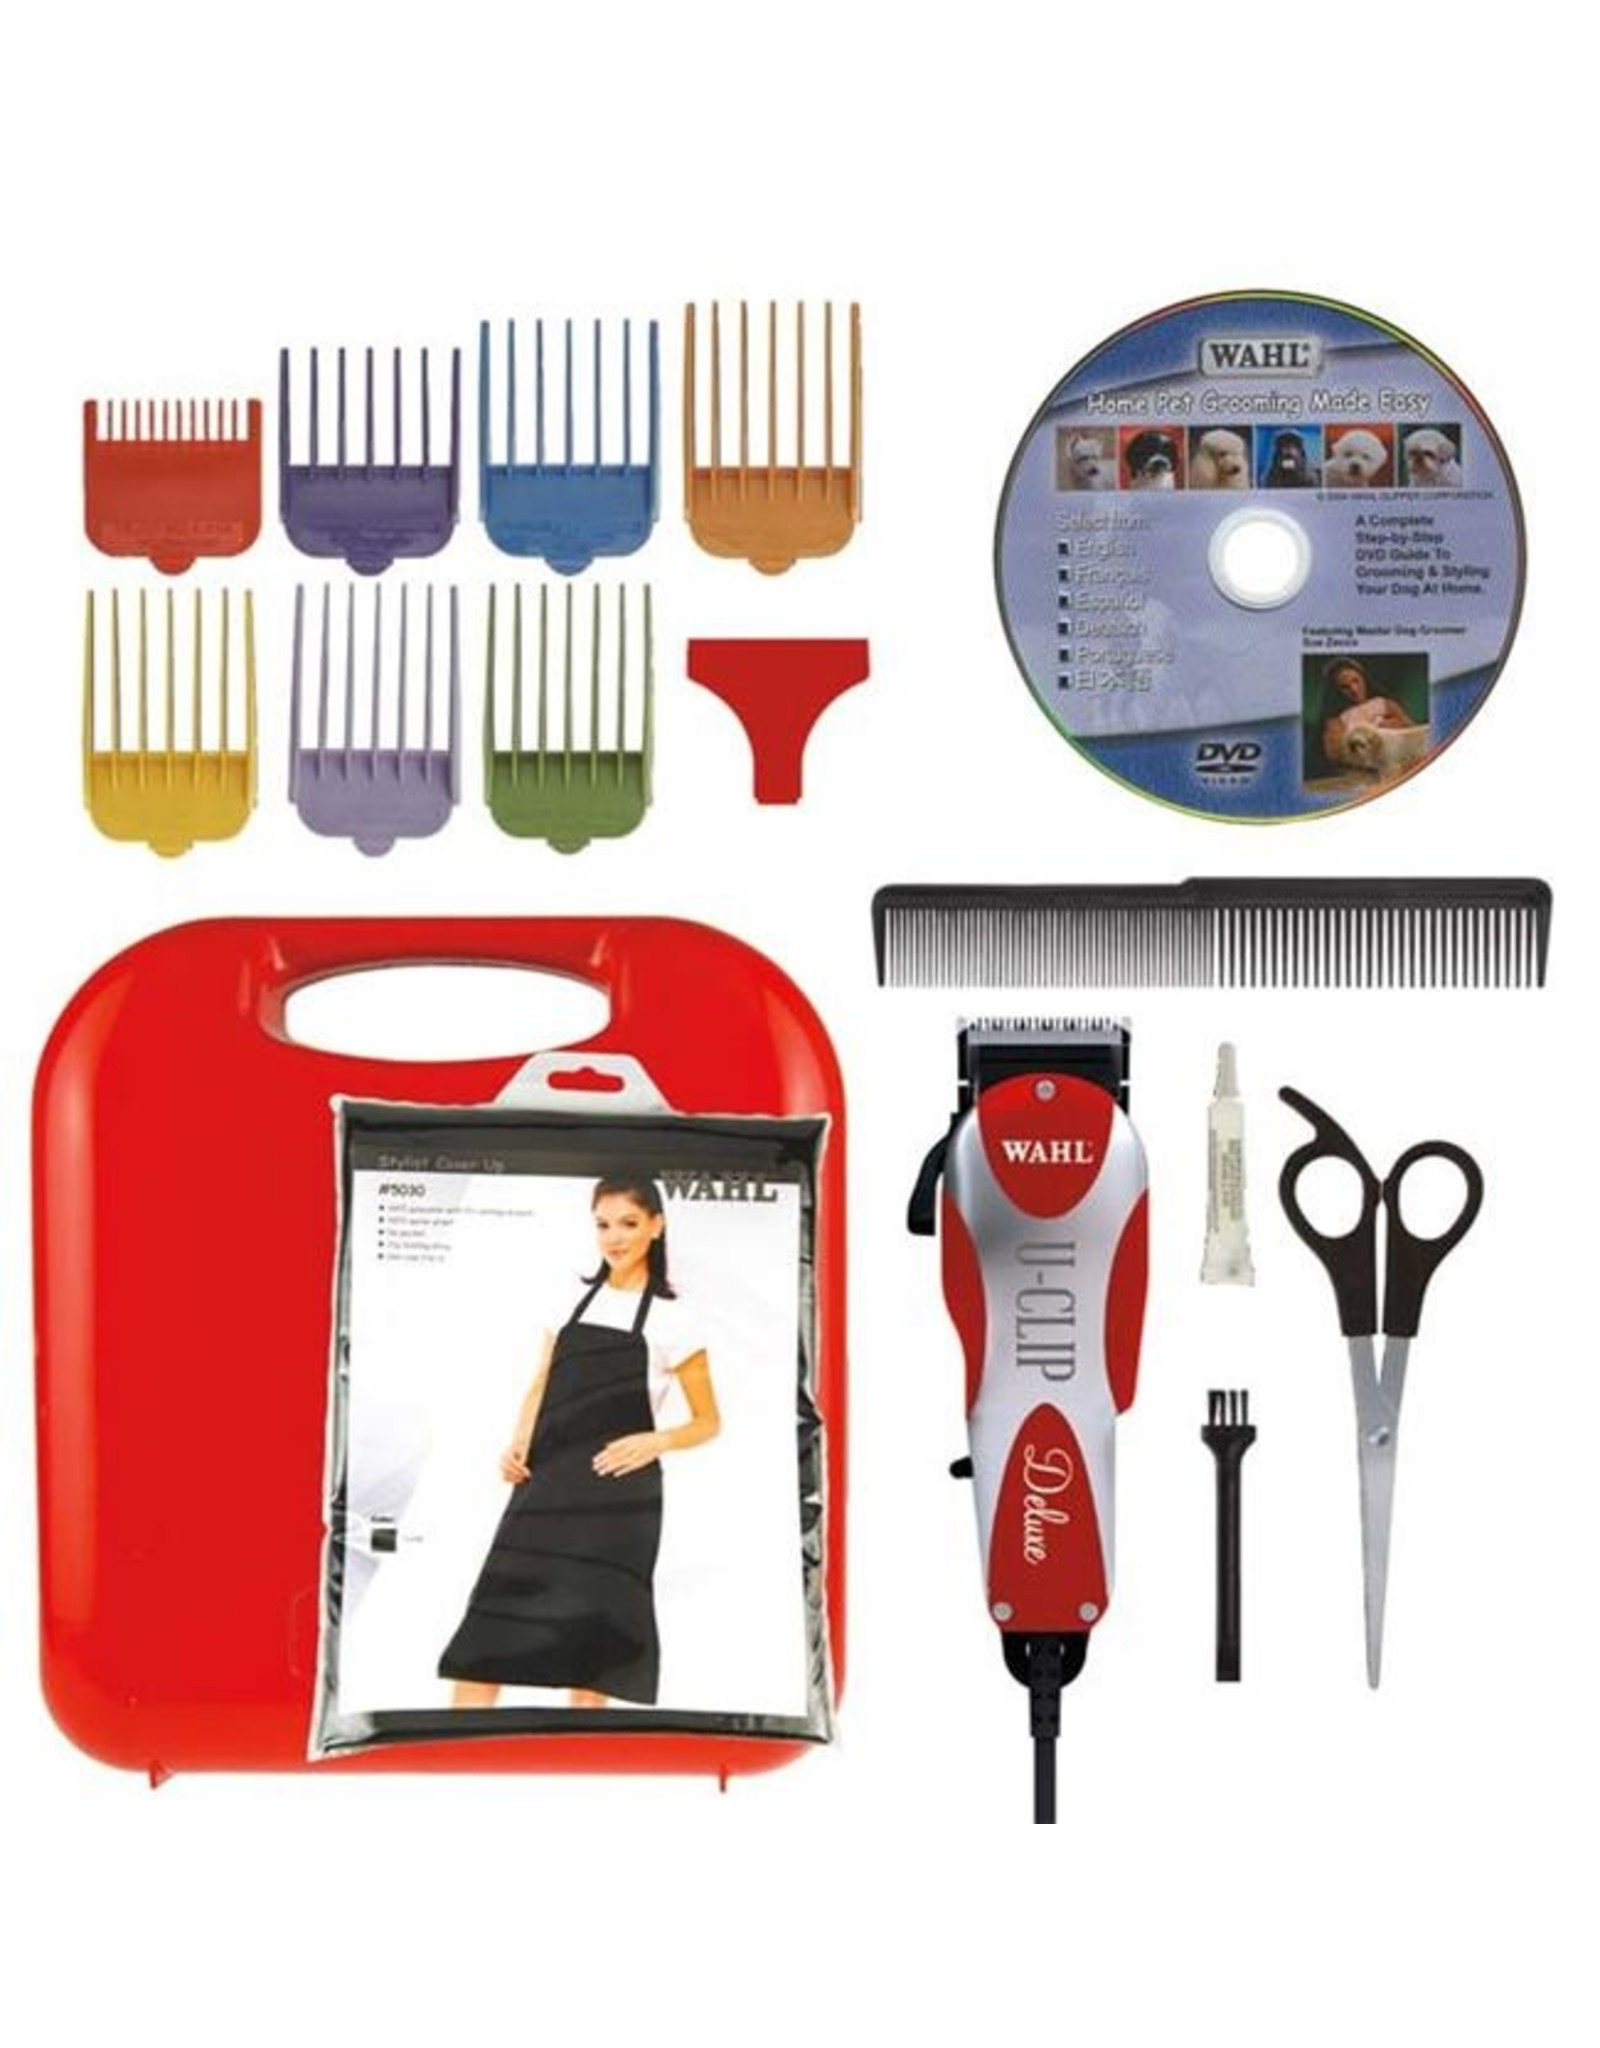 Wahl Wahl Deluxe U-Clip Medium Duty Home Grooming Kit